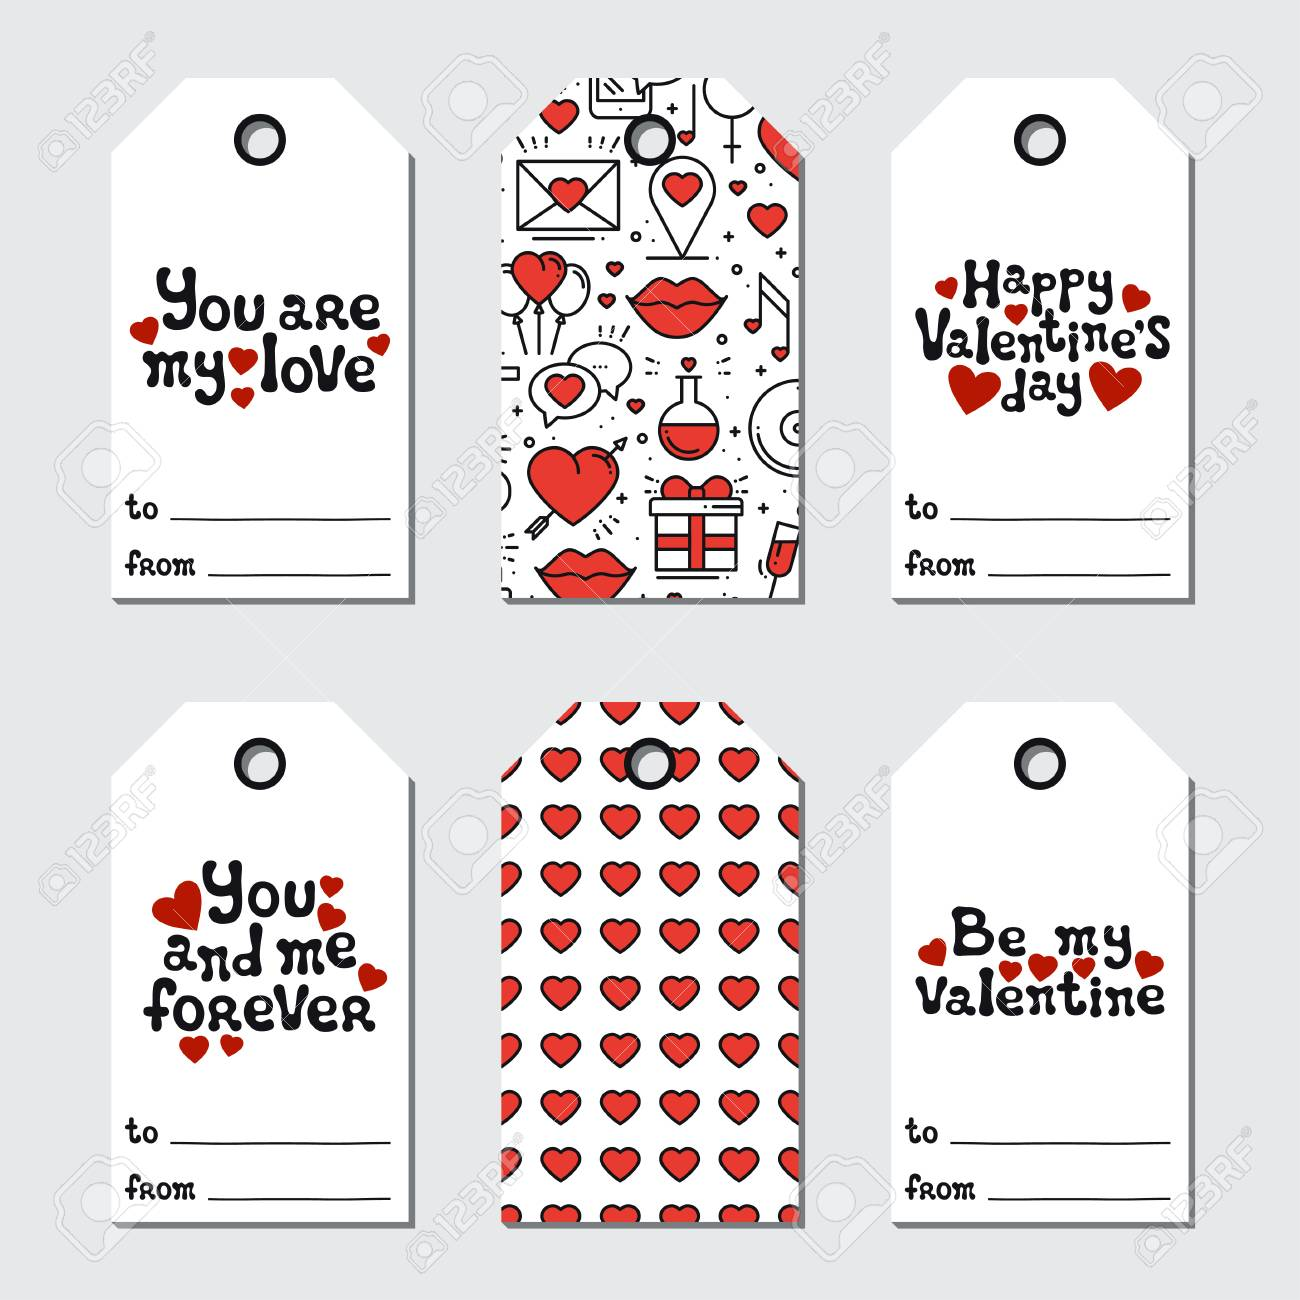 graphic relating to Valentine's Day Tags Printable named St Valentines working day present tags. Printable tags assortment. Enjoy,..